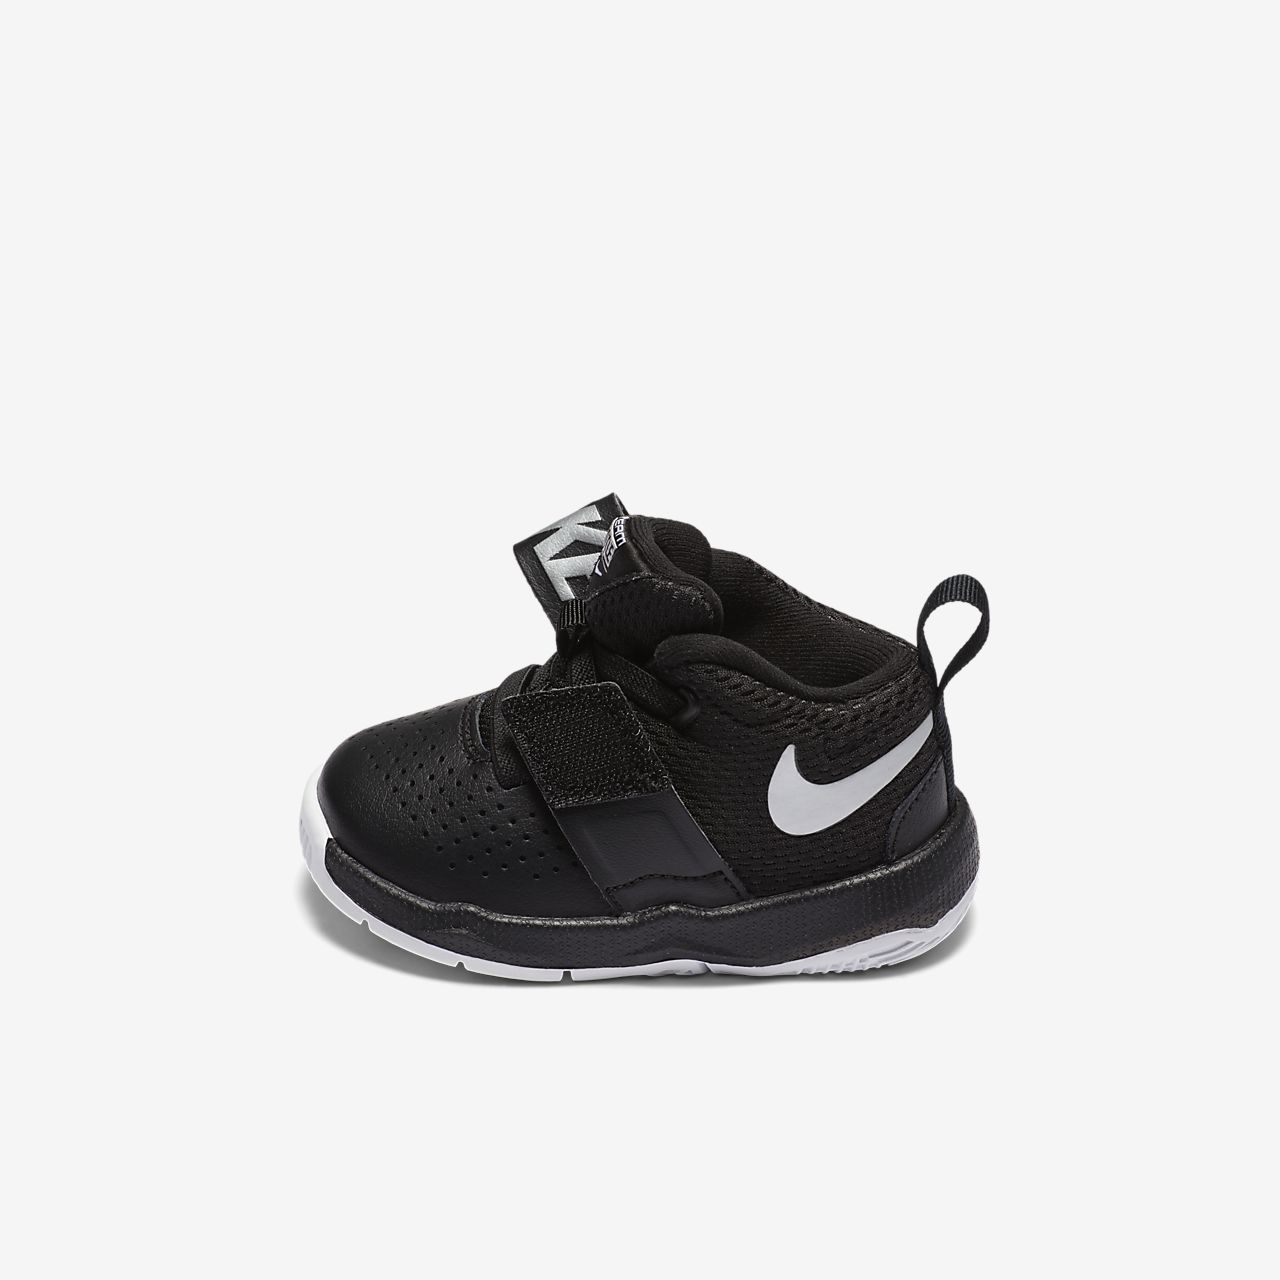 9886cdc8e42 Nike Team Hustle D 8 Toddler Shoe. Nike.com